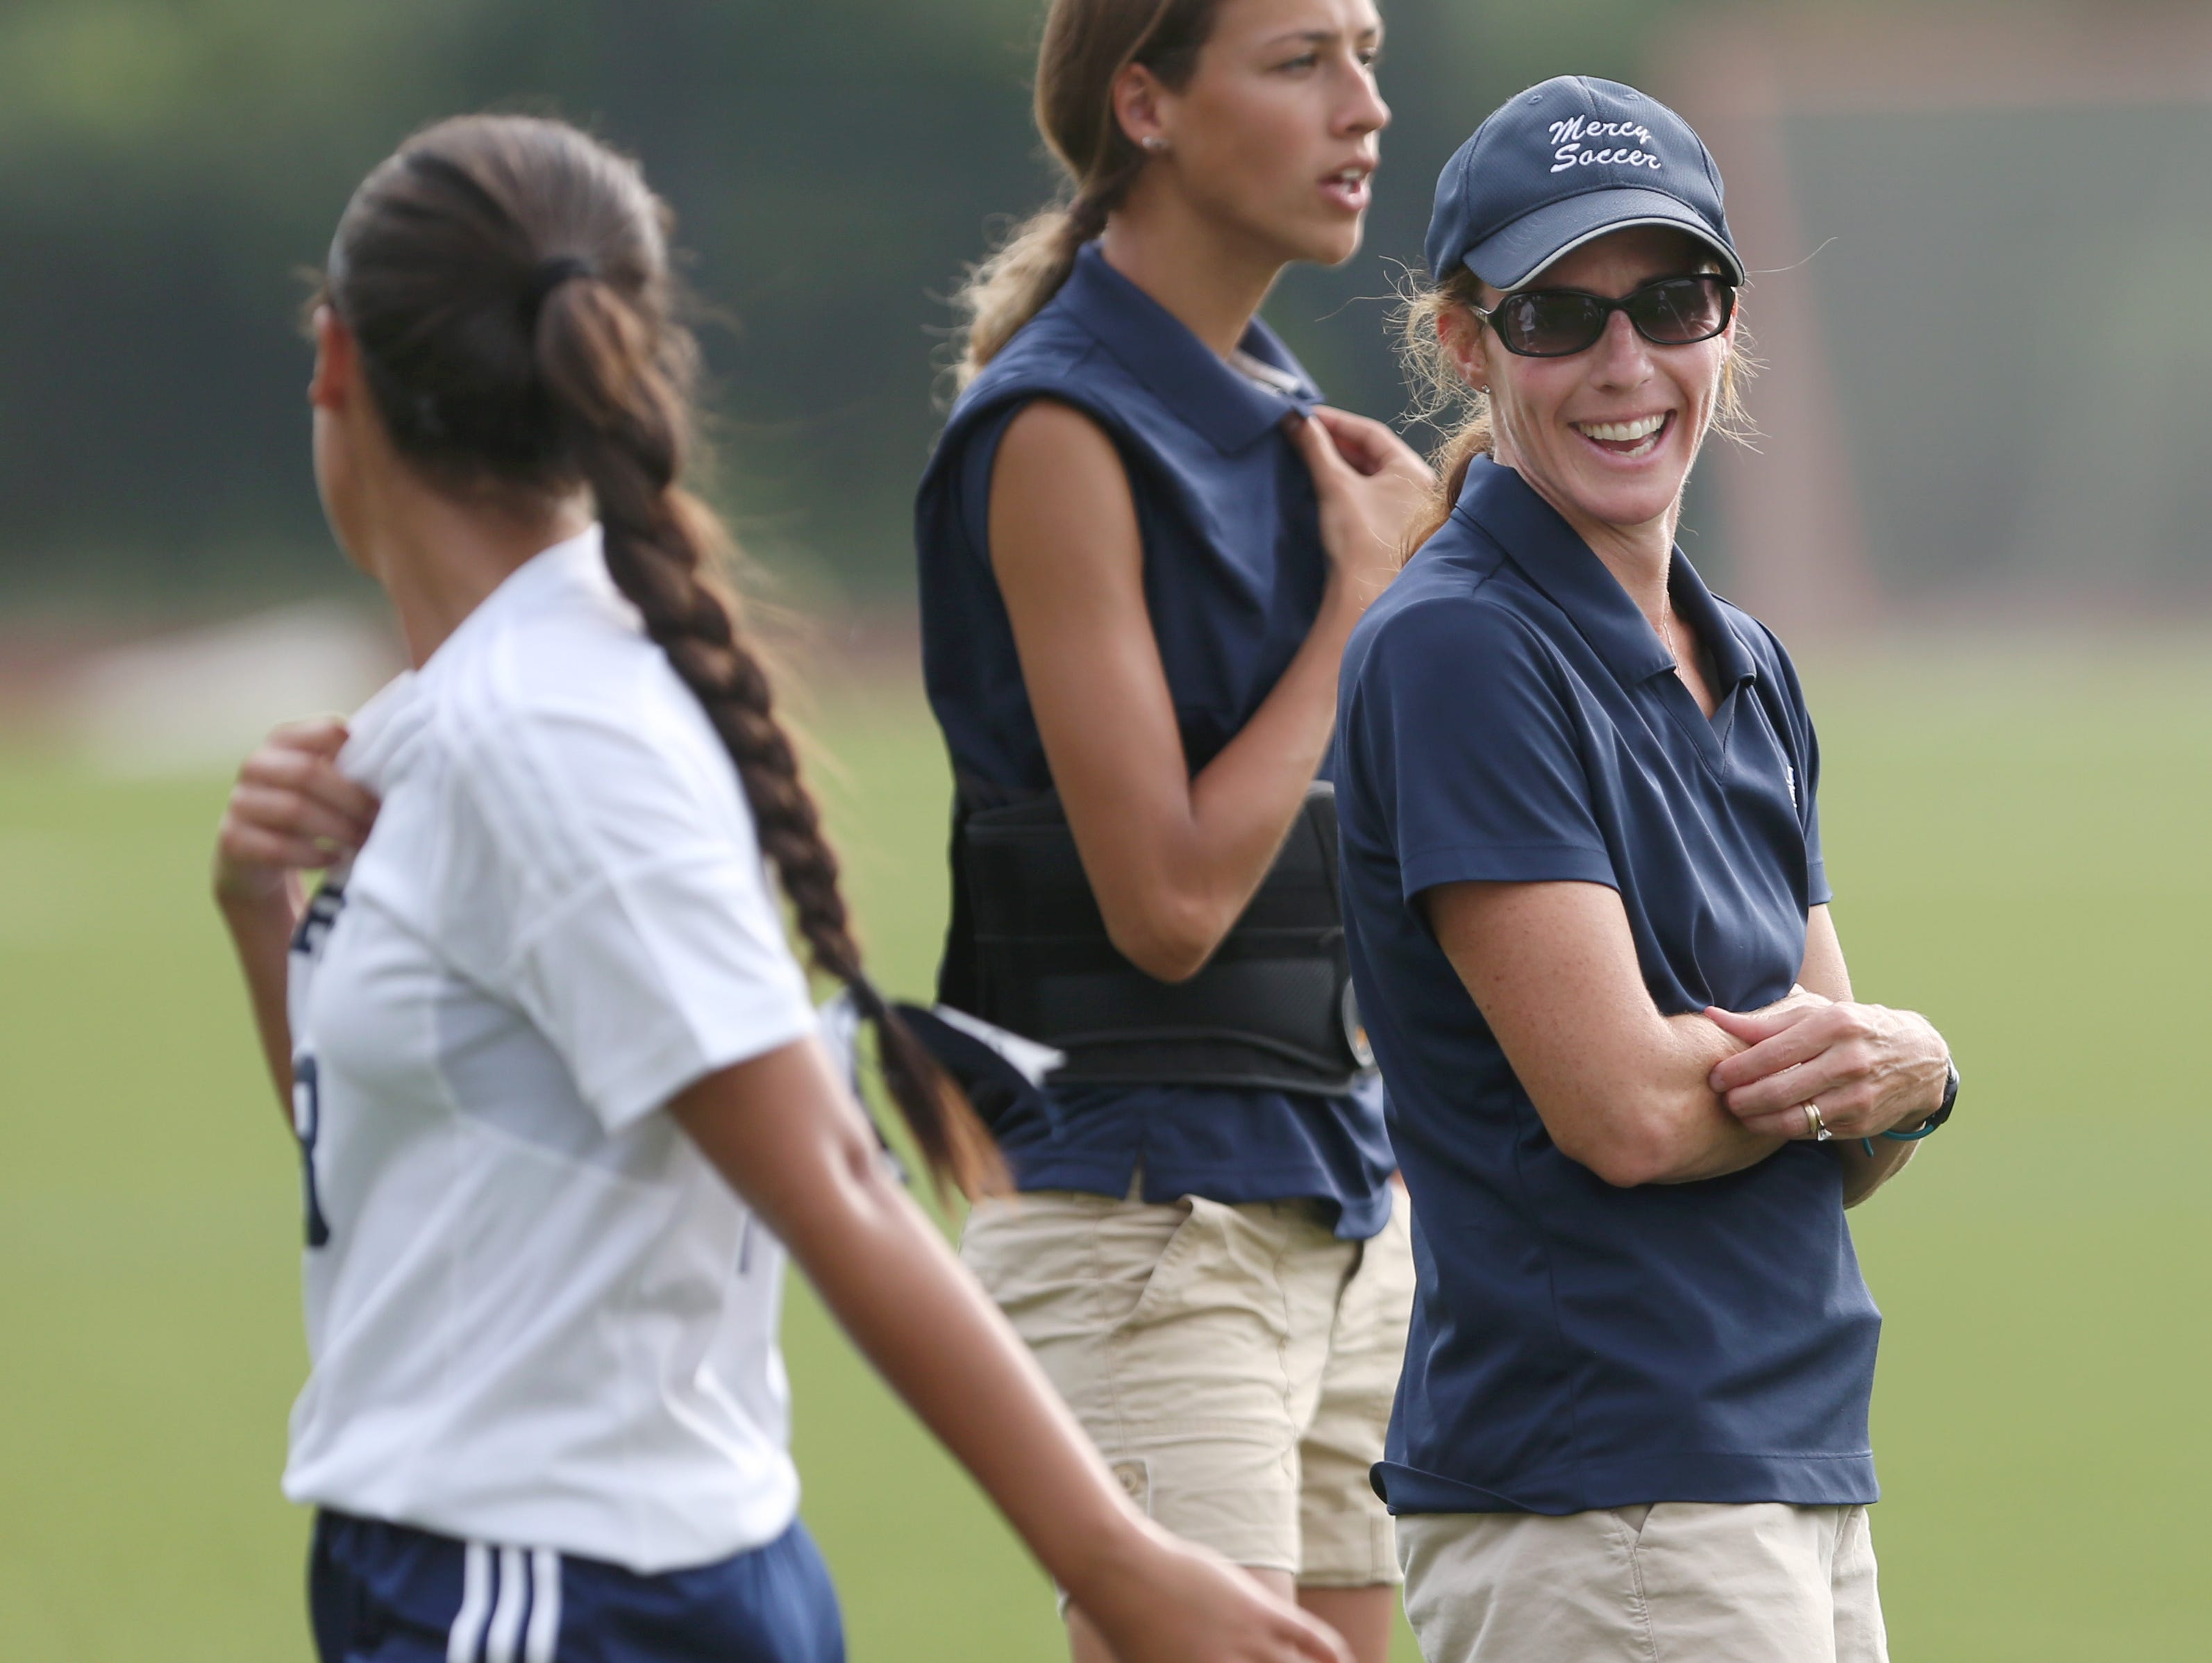 Donna Trost, head coach of Mercy varsity girls soccer, shares a laugh with her player, Olivia Torres, as Torres leaves the field during Mercy's matchup against Aquinas at Mercy High Tuesday, Sept. 8, 2015 in Brighton. Trost is the latest winner of the Democrat & Chronicle Coaches Who Care award.